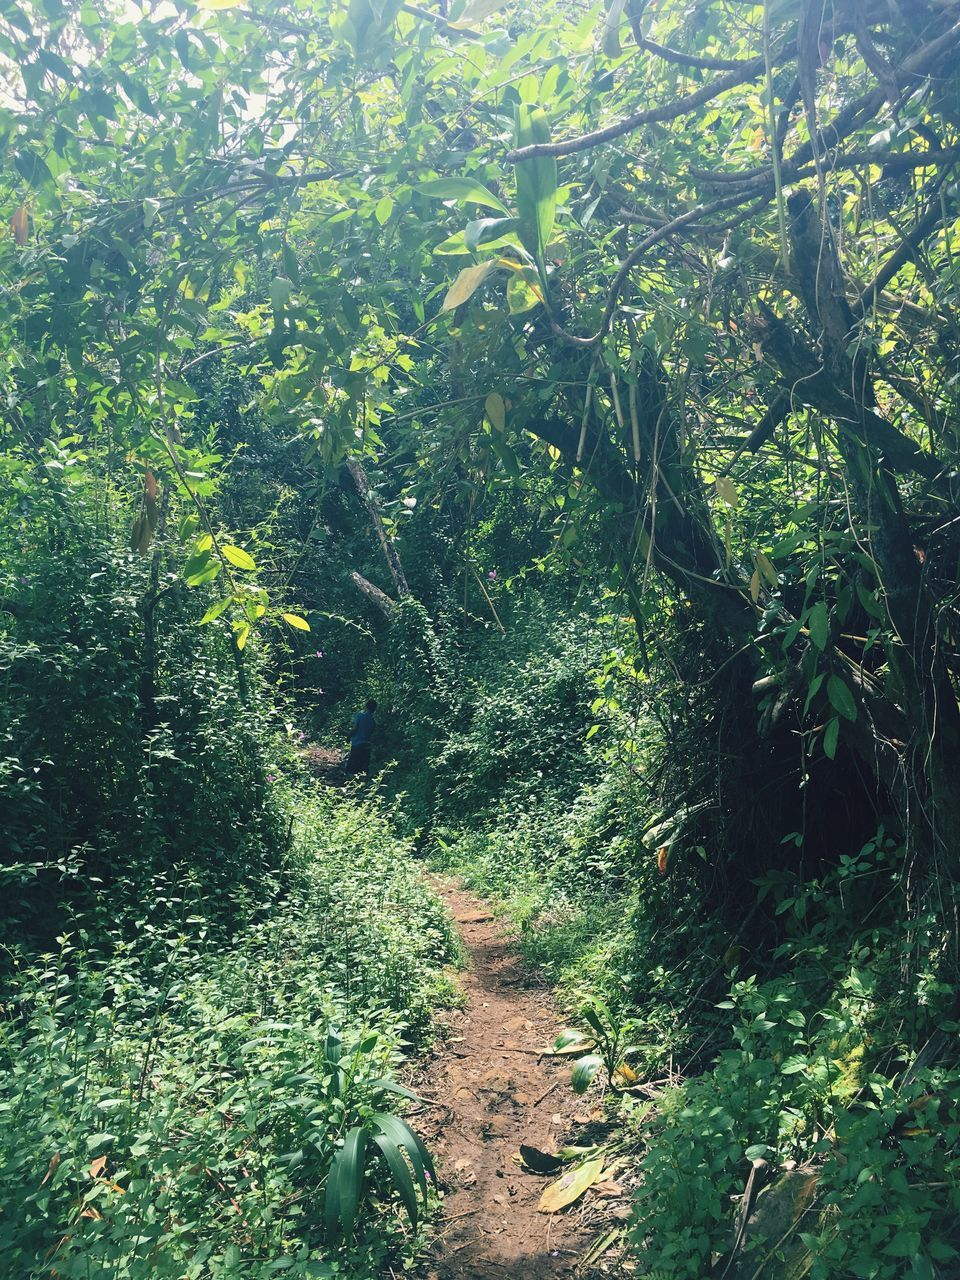 green, nature, adventure, forest, plant, growth, landscape, no people, day, outdoors